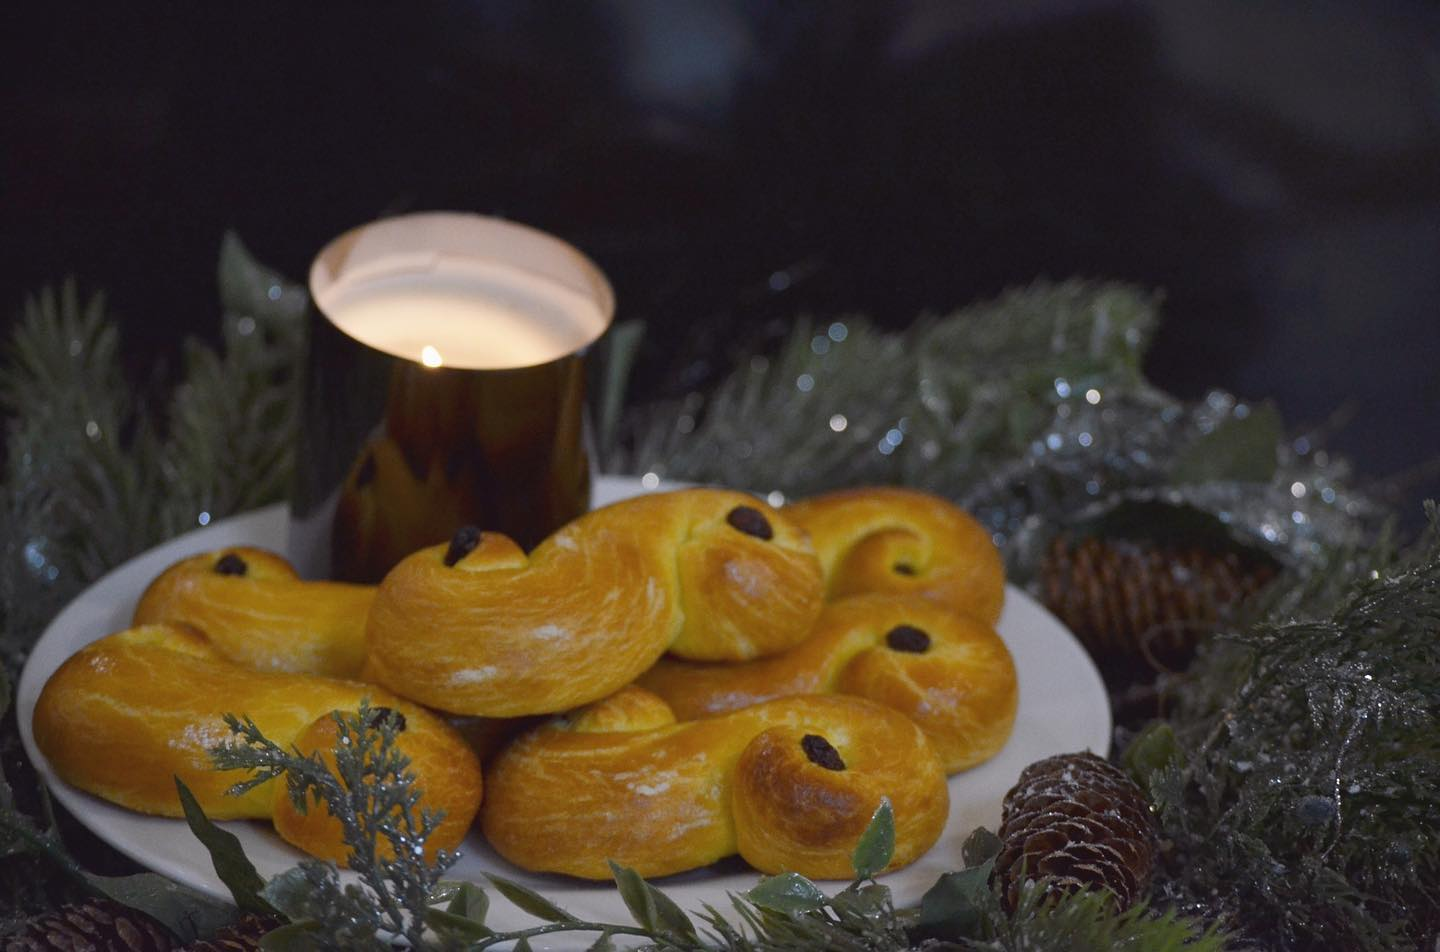 Lucia and candle